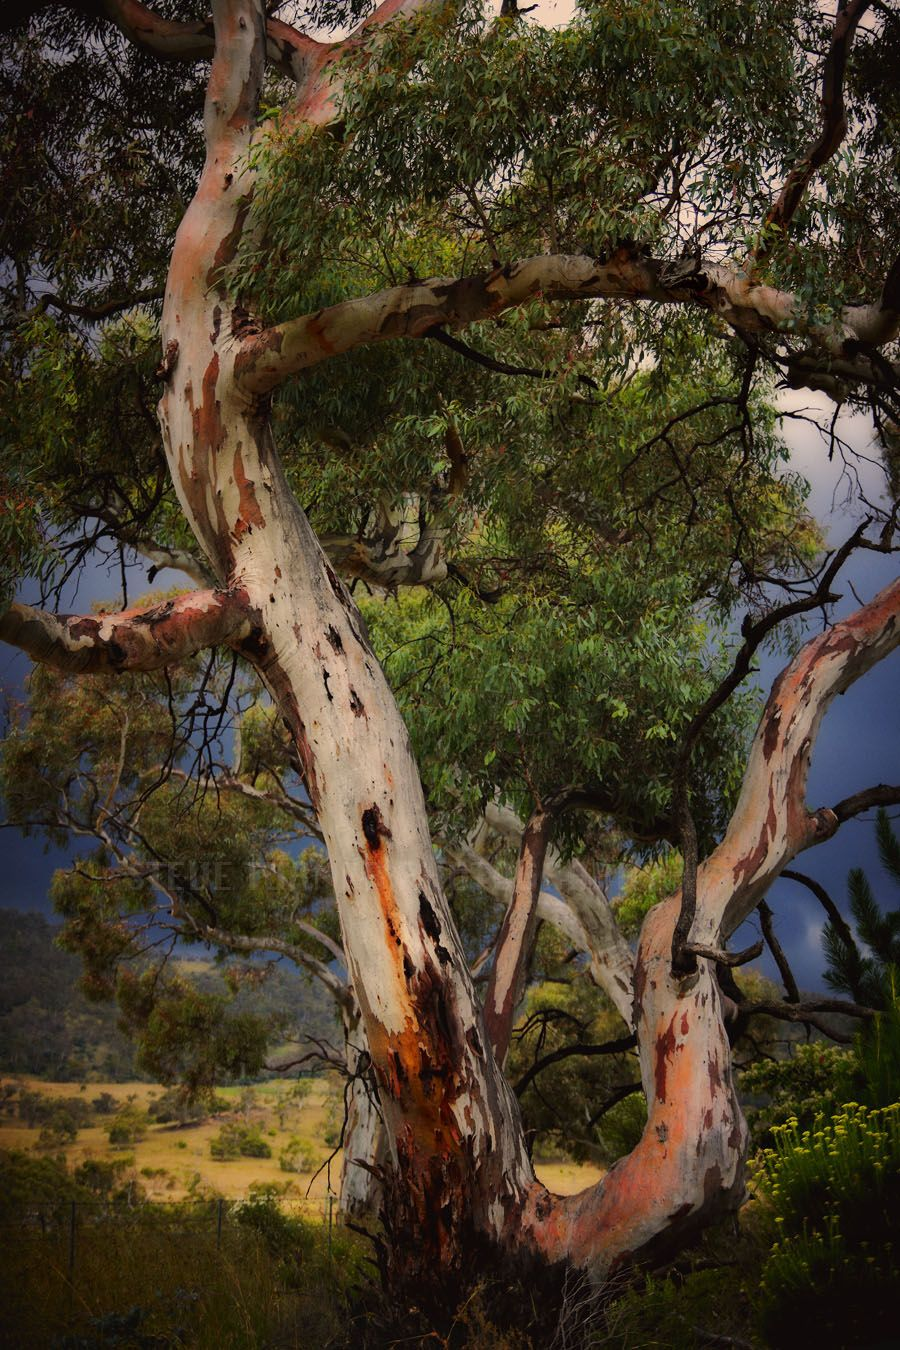 Gum Tree Snowy Mountains Australia Photo Steve Turner Australian Trees Australia Landscape Australian Plants